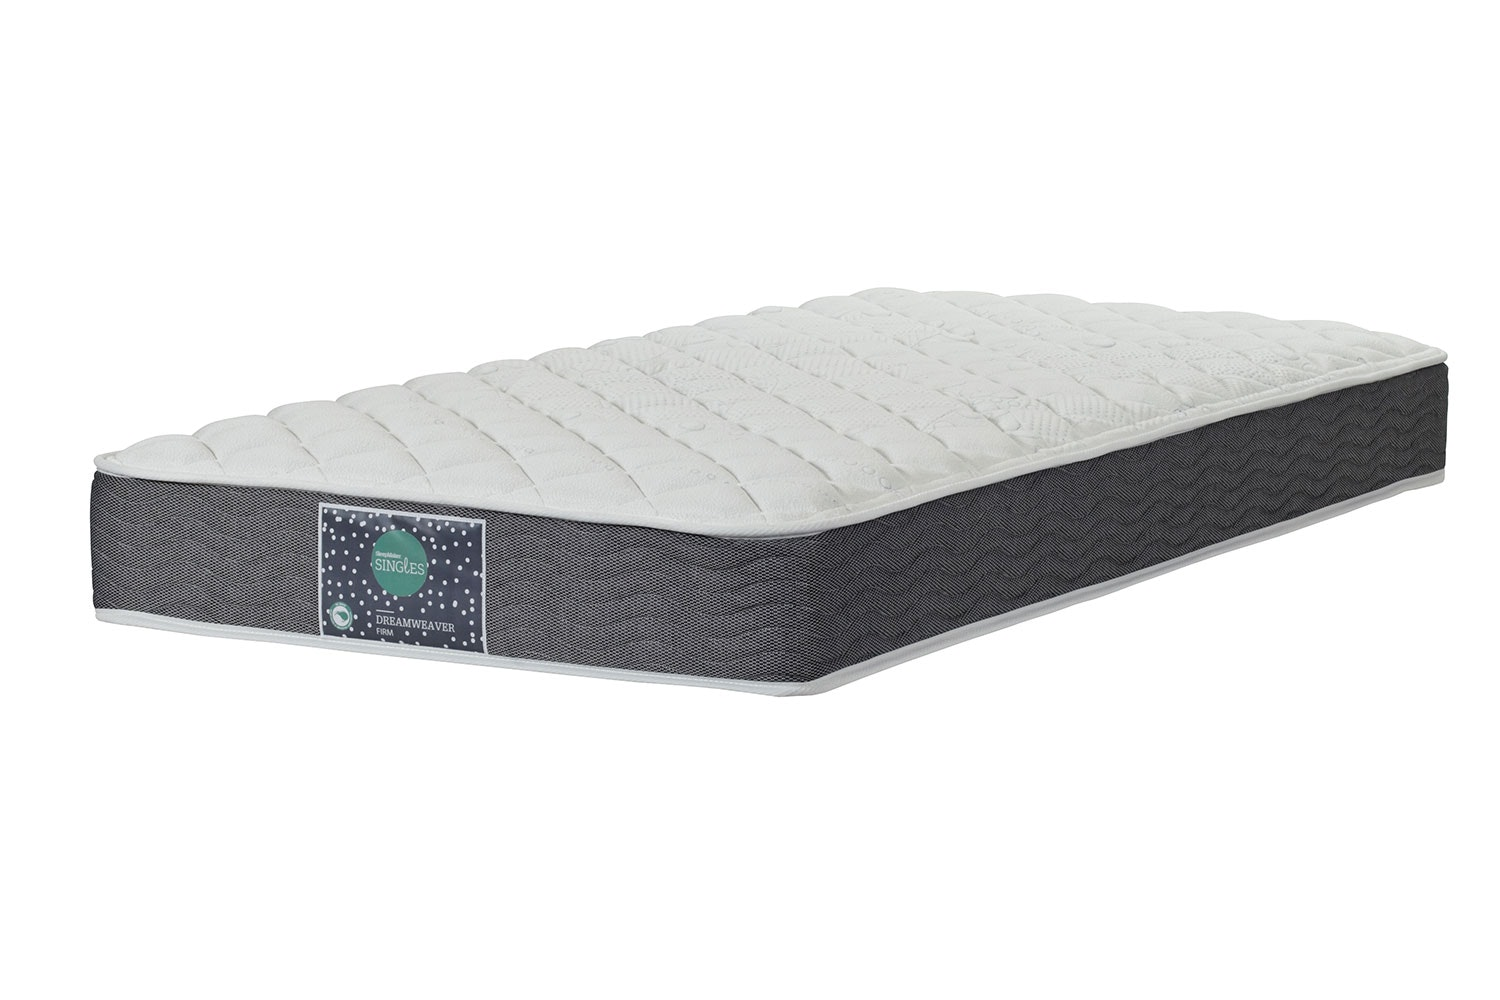 Sleepmaker mattress